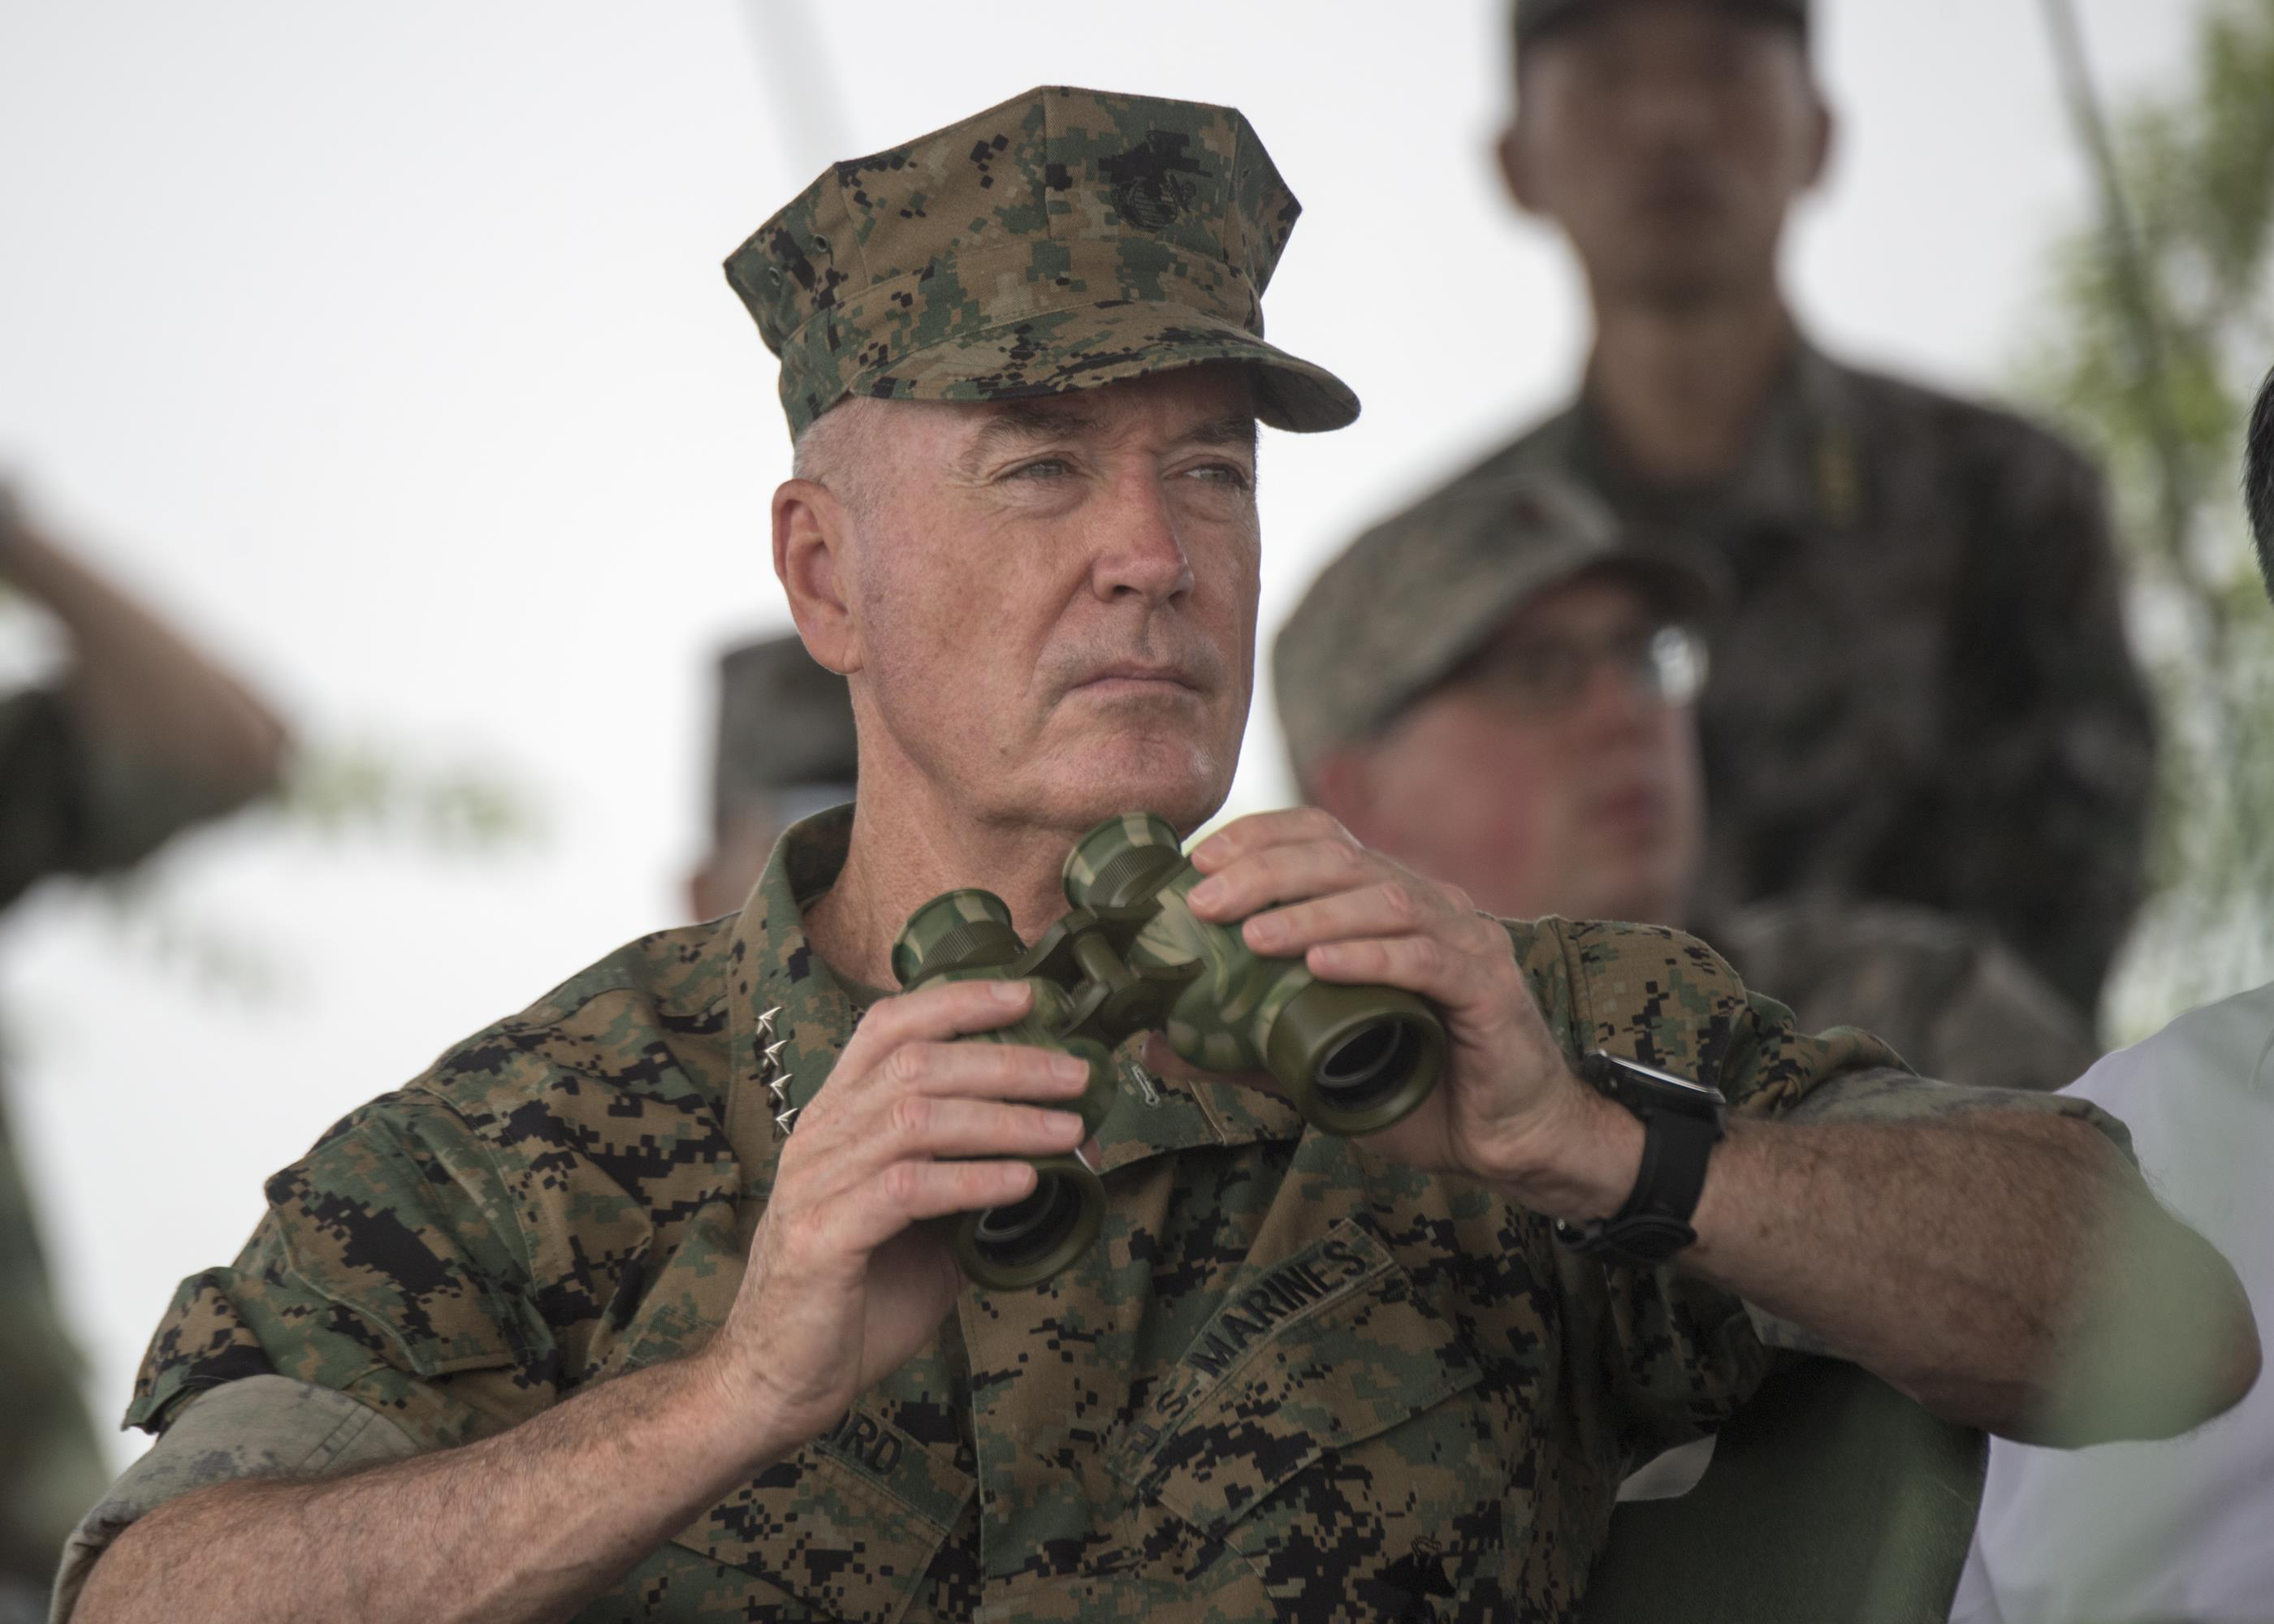 Marine Corps Gen. Joe Dunford, chairman of the Joint Chiefs of Staff, observes an attack exercise by Chinese troops at a Chinese army base in Shenyang, China, Aug. 16, 2017. (DoD photo by Navy Petty Officer 1st Class Dominique A. Pineiro)